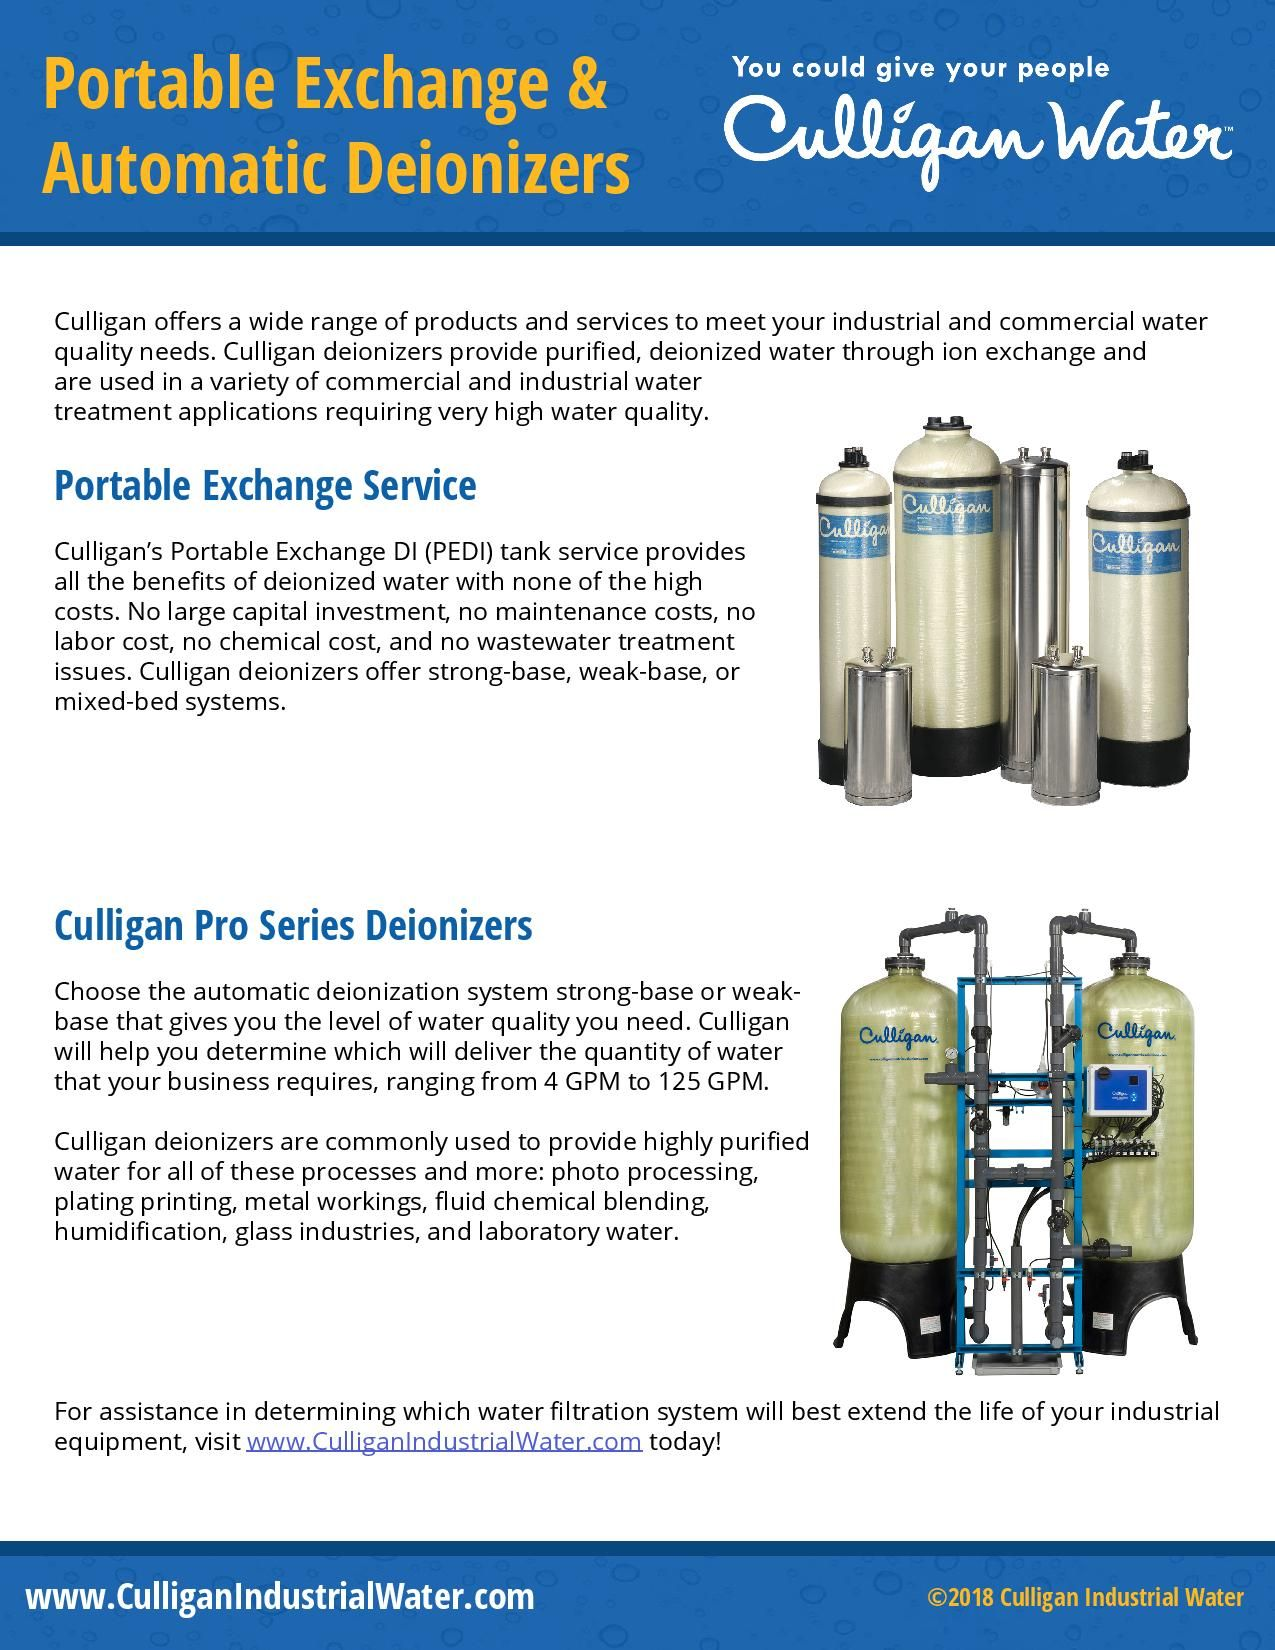 Culligan Deionizers Provide Purified Deionized Water Through Ion Exchange And Are Used In A Variety Of Commercial Treatment